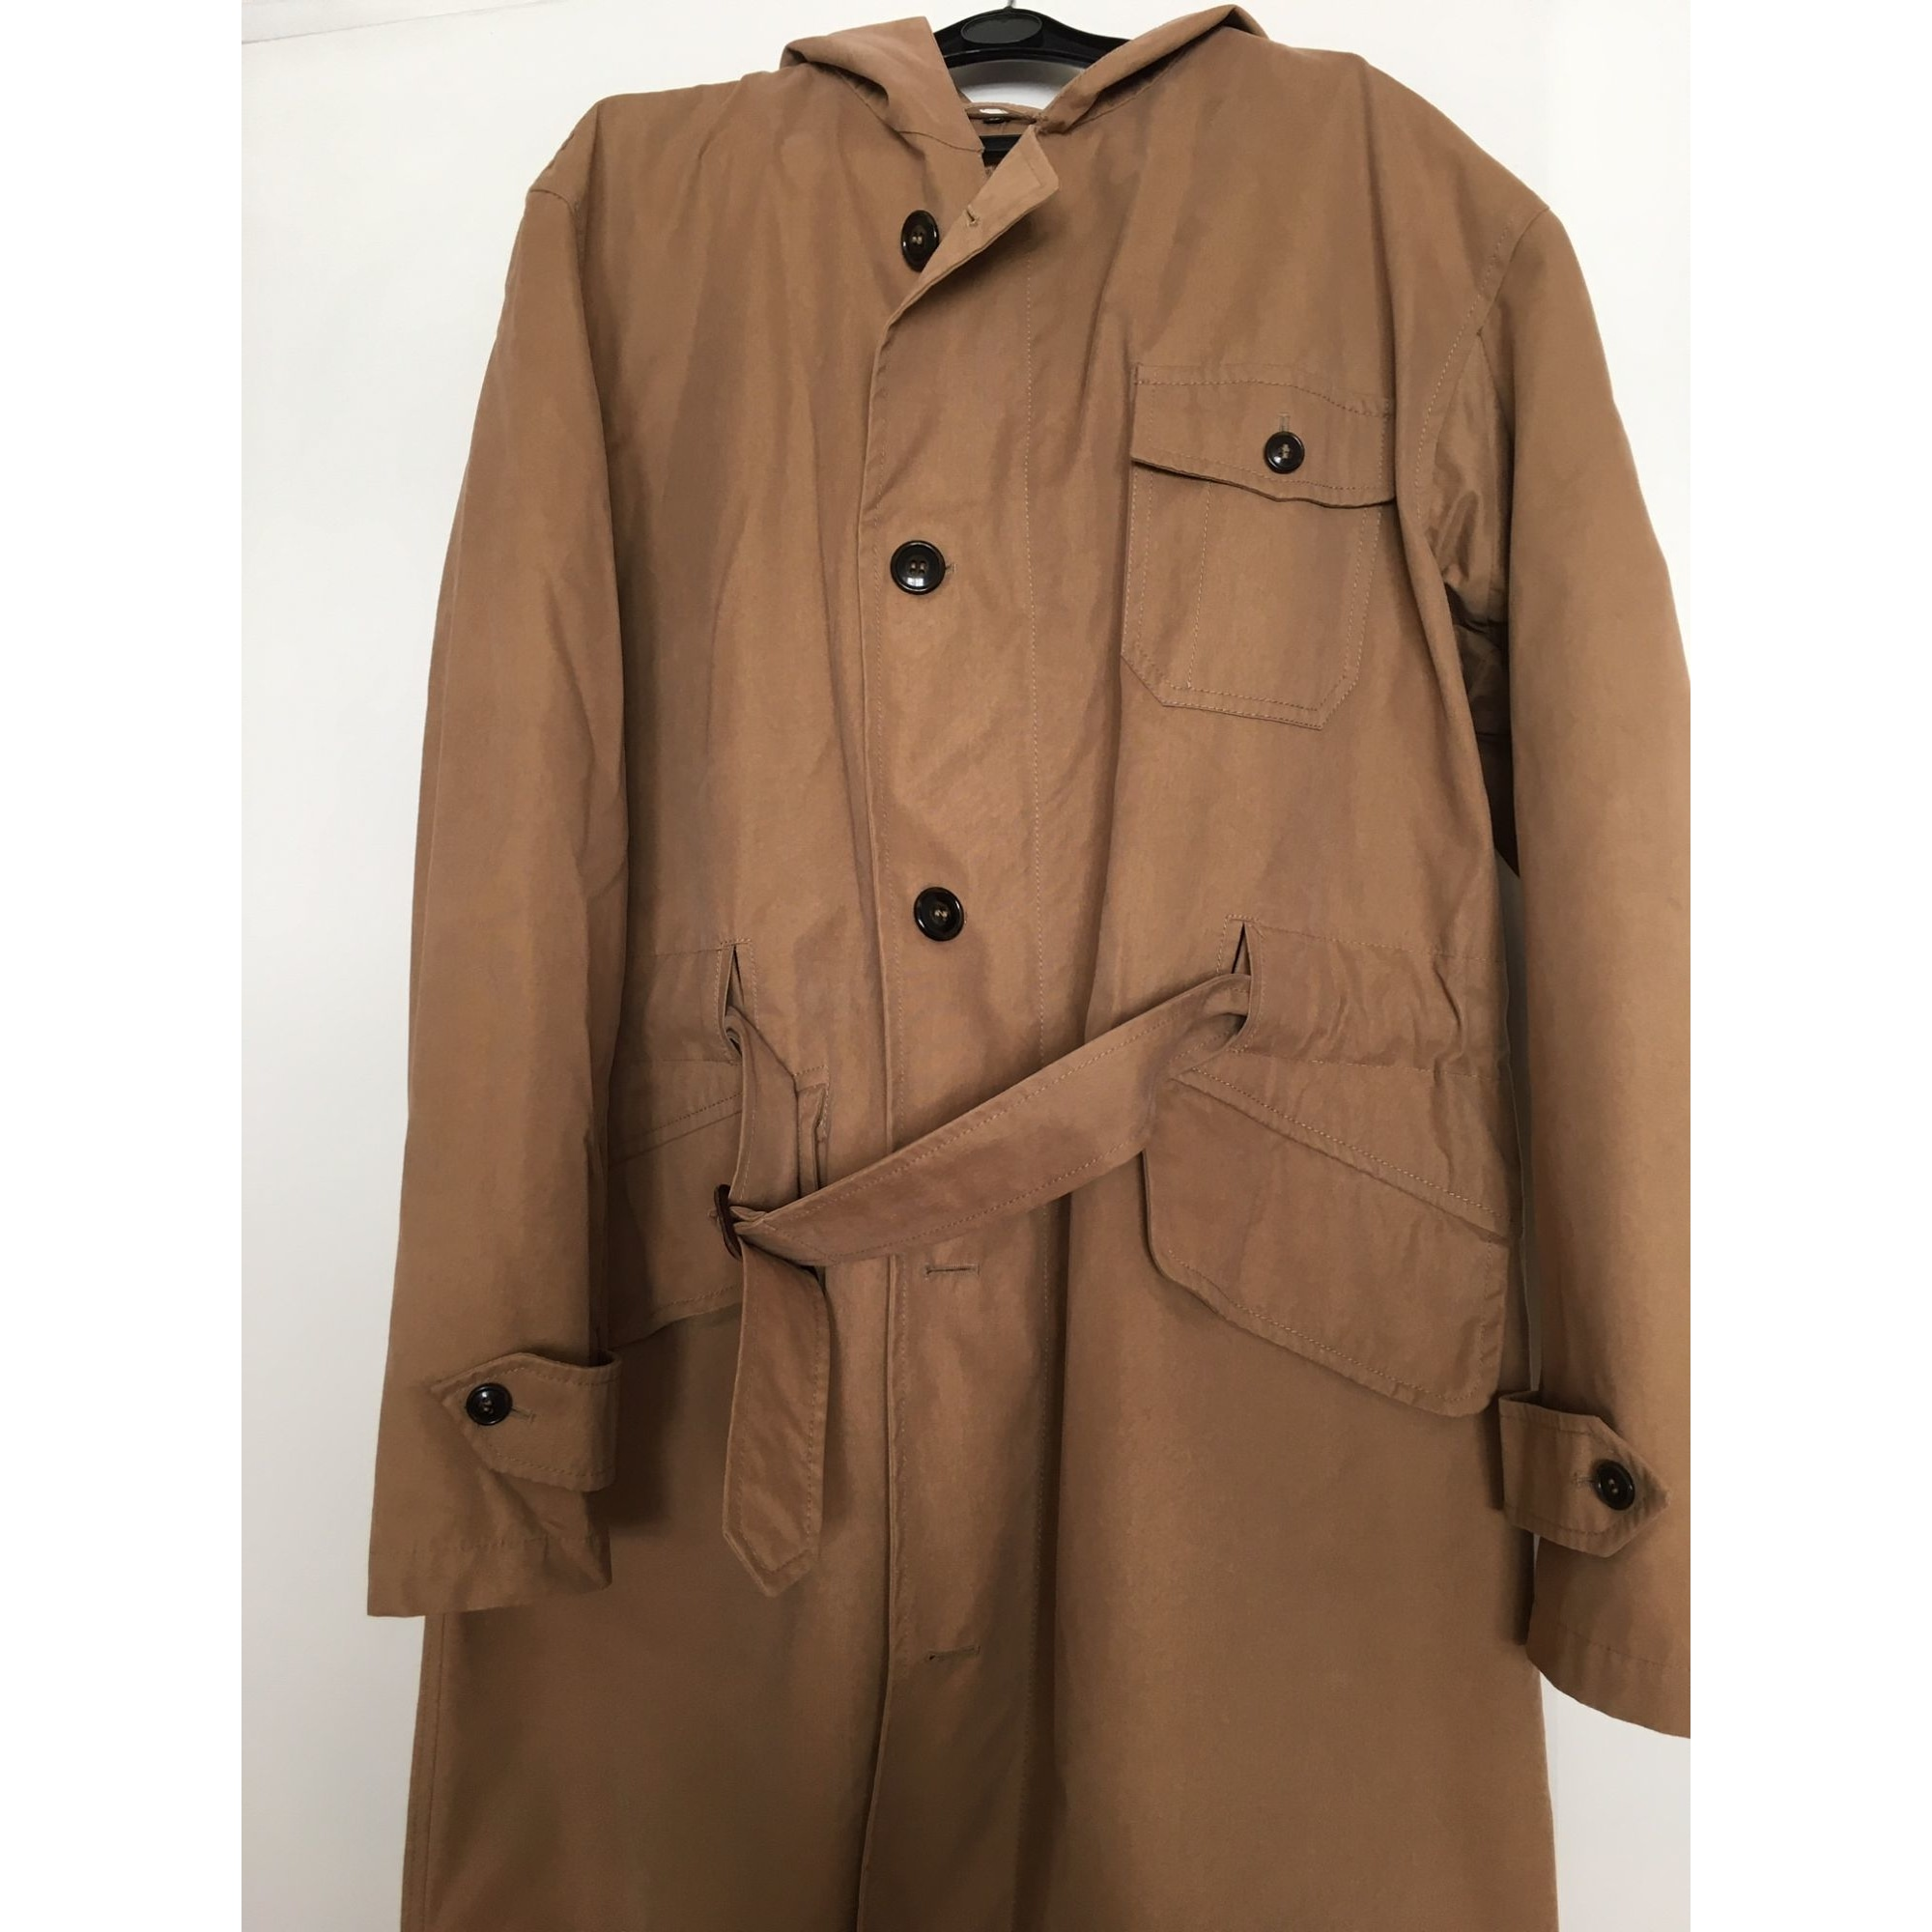 Imperméable, trench SEALUP Beige, camel